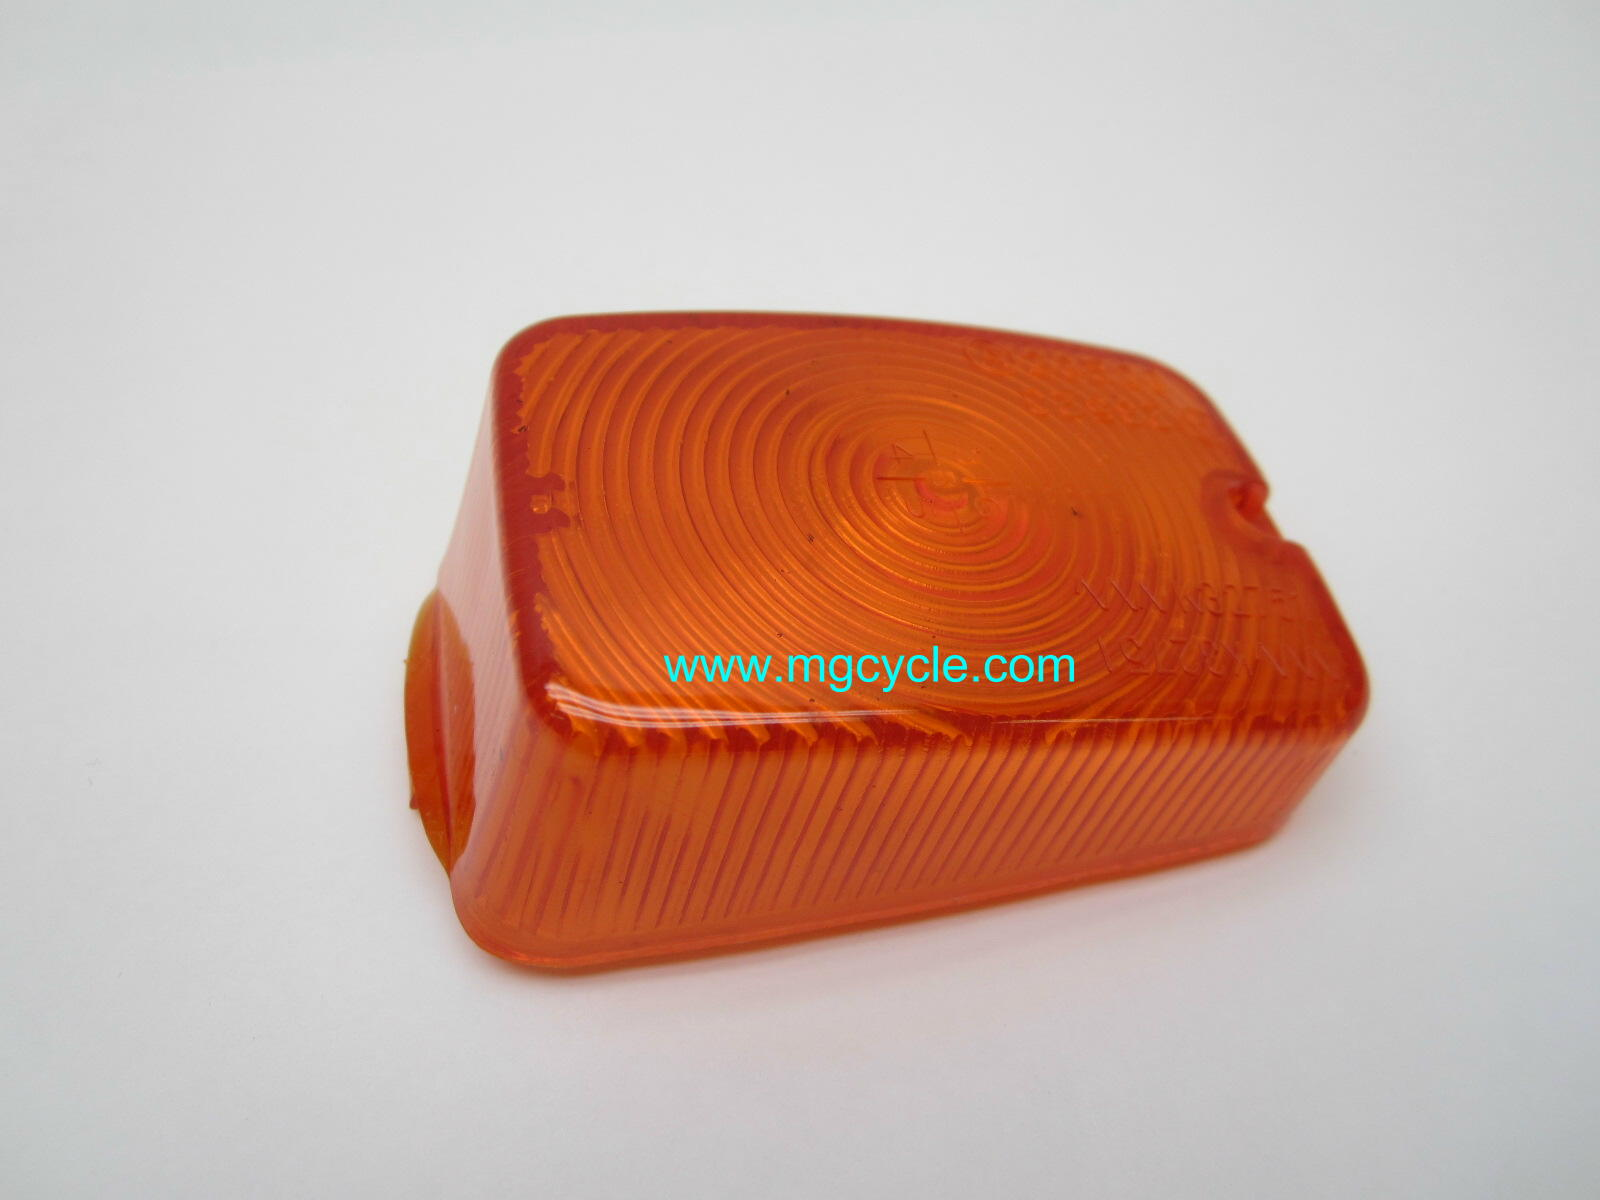 Rectangular turn signal lens SP CX LM2 T4 T5 V503 Monza V65C